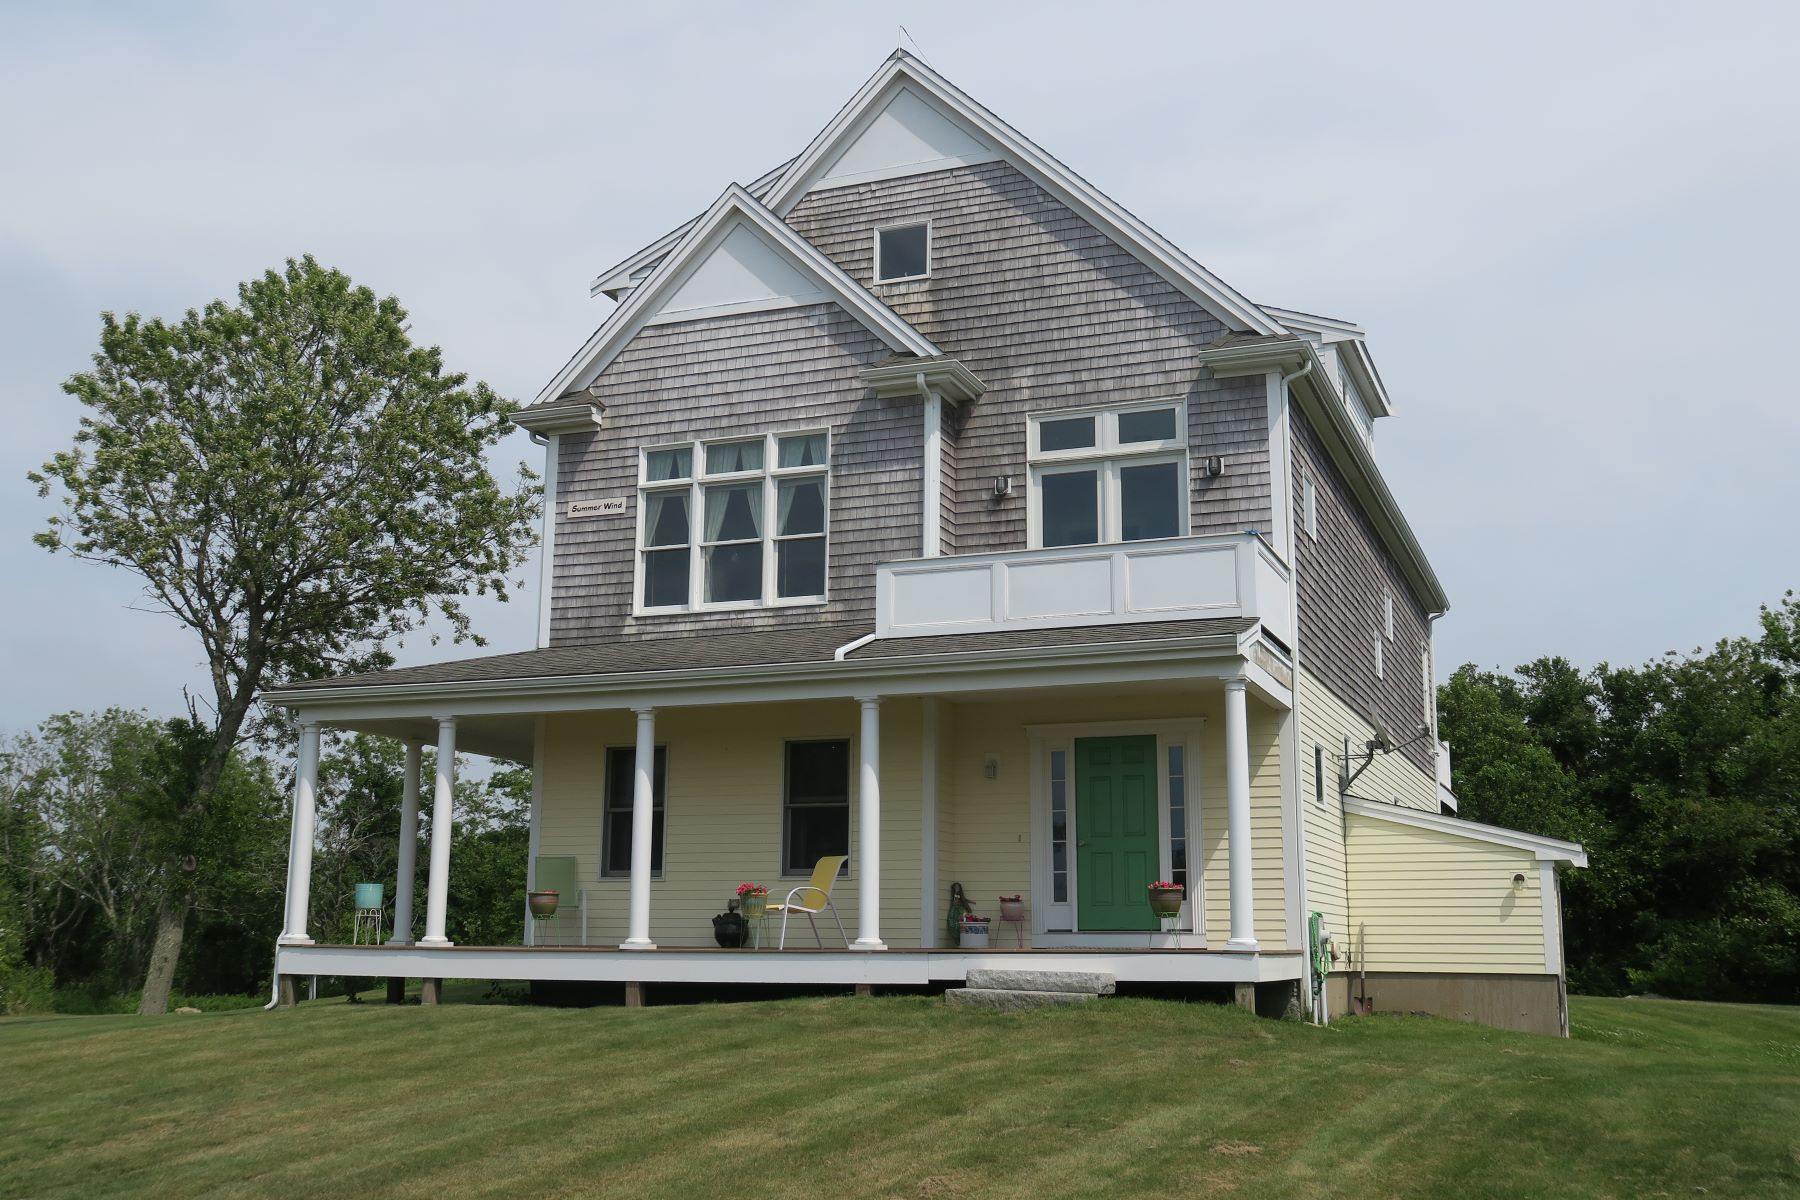 Single Family Homes for Sale at Gracious Home 1678 Lakeside Drive Block Island, Rhode Island 02807 United States